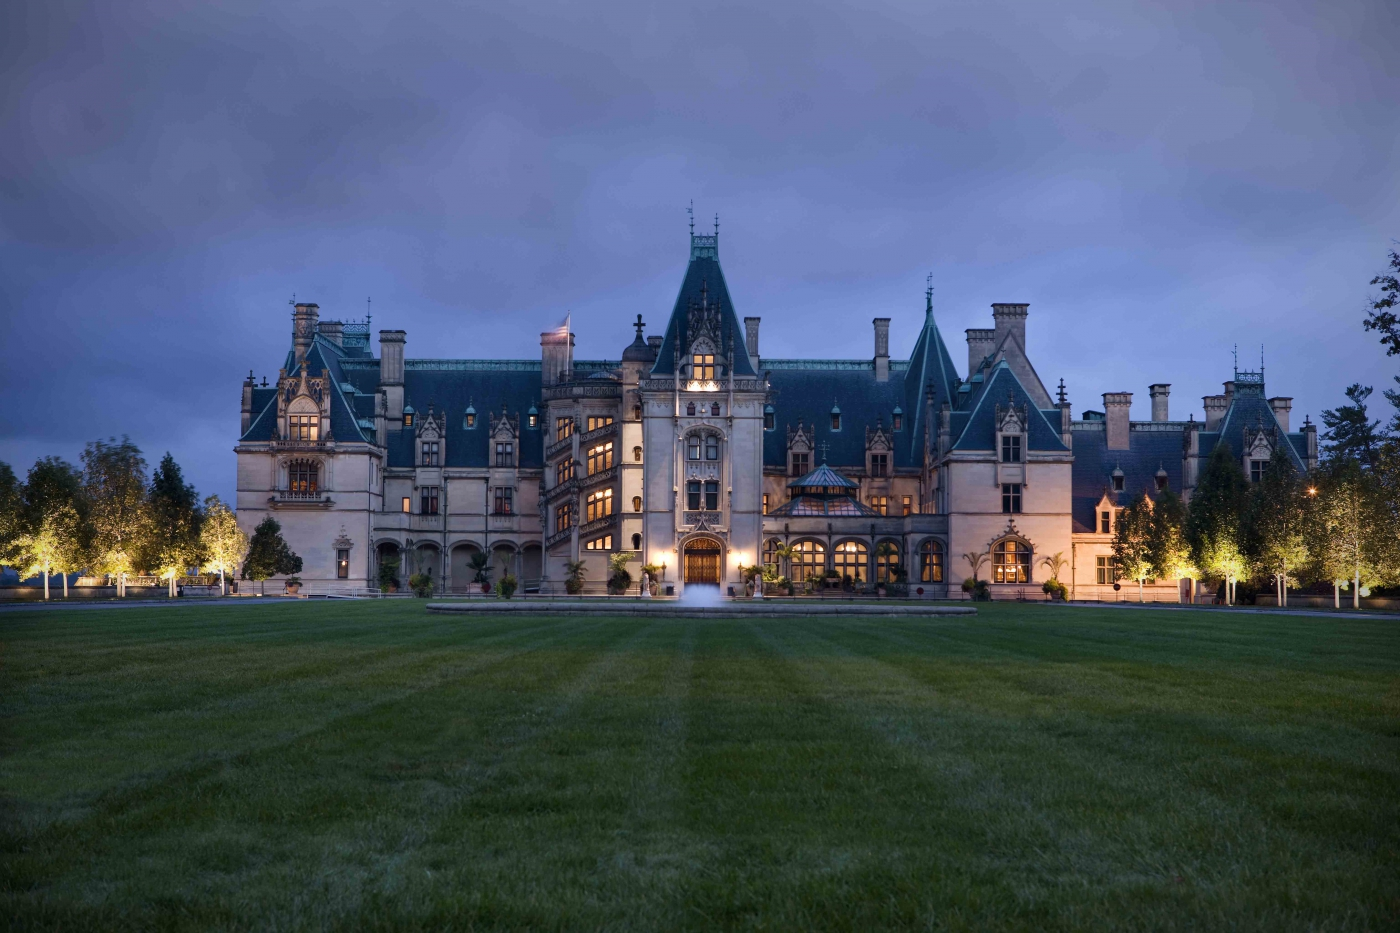 Biltmore is the largest private residence in America. Visitors can tour the house, its gardens and the nearby village and winery.